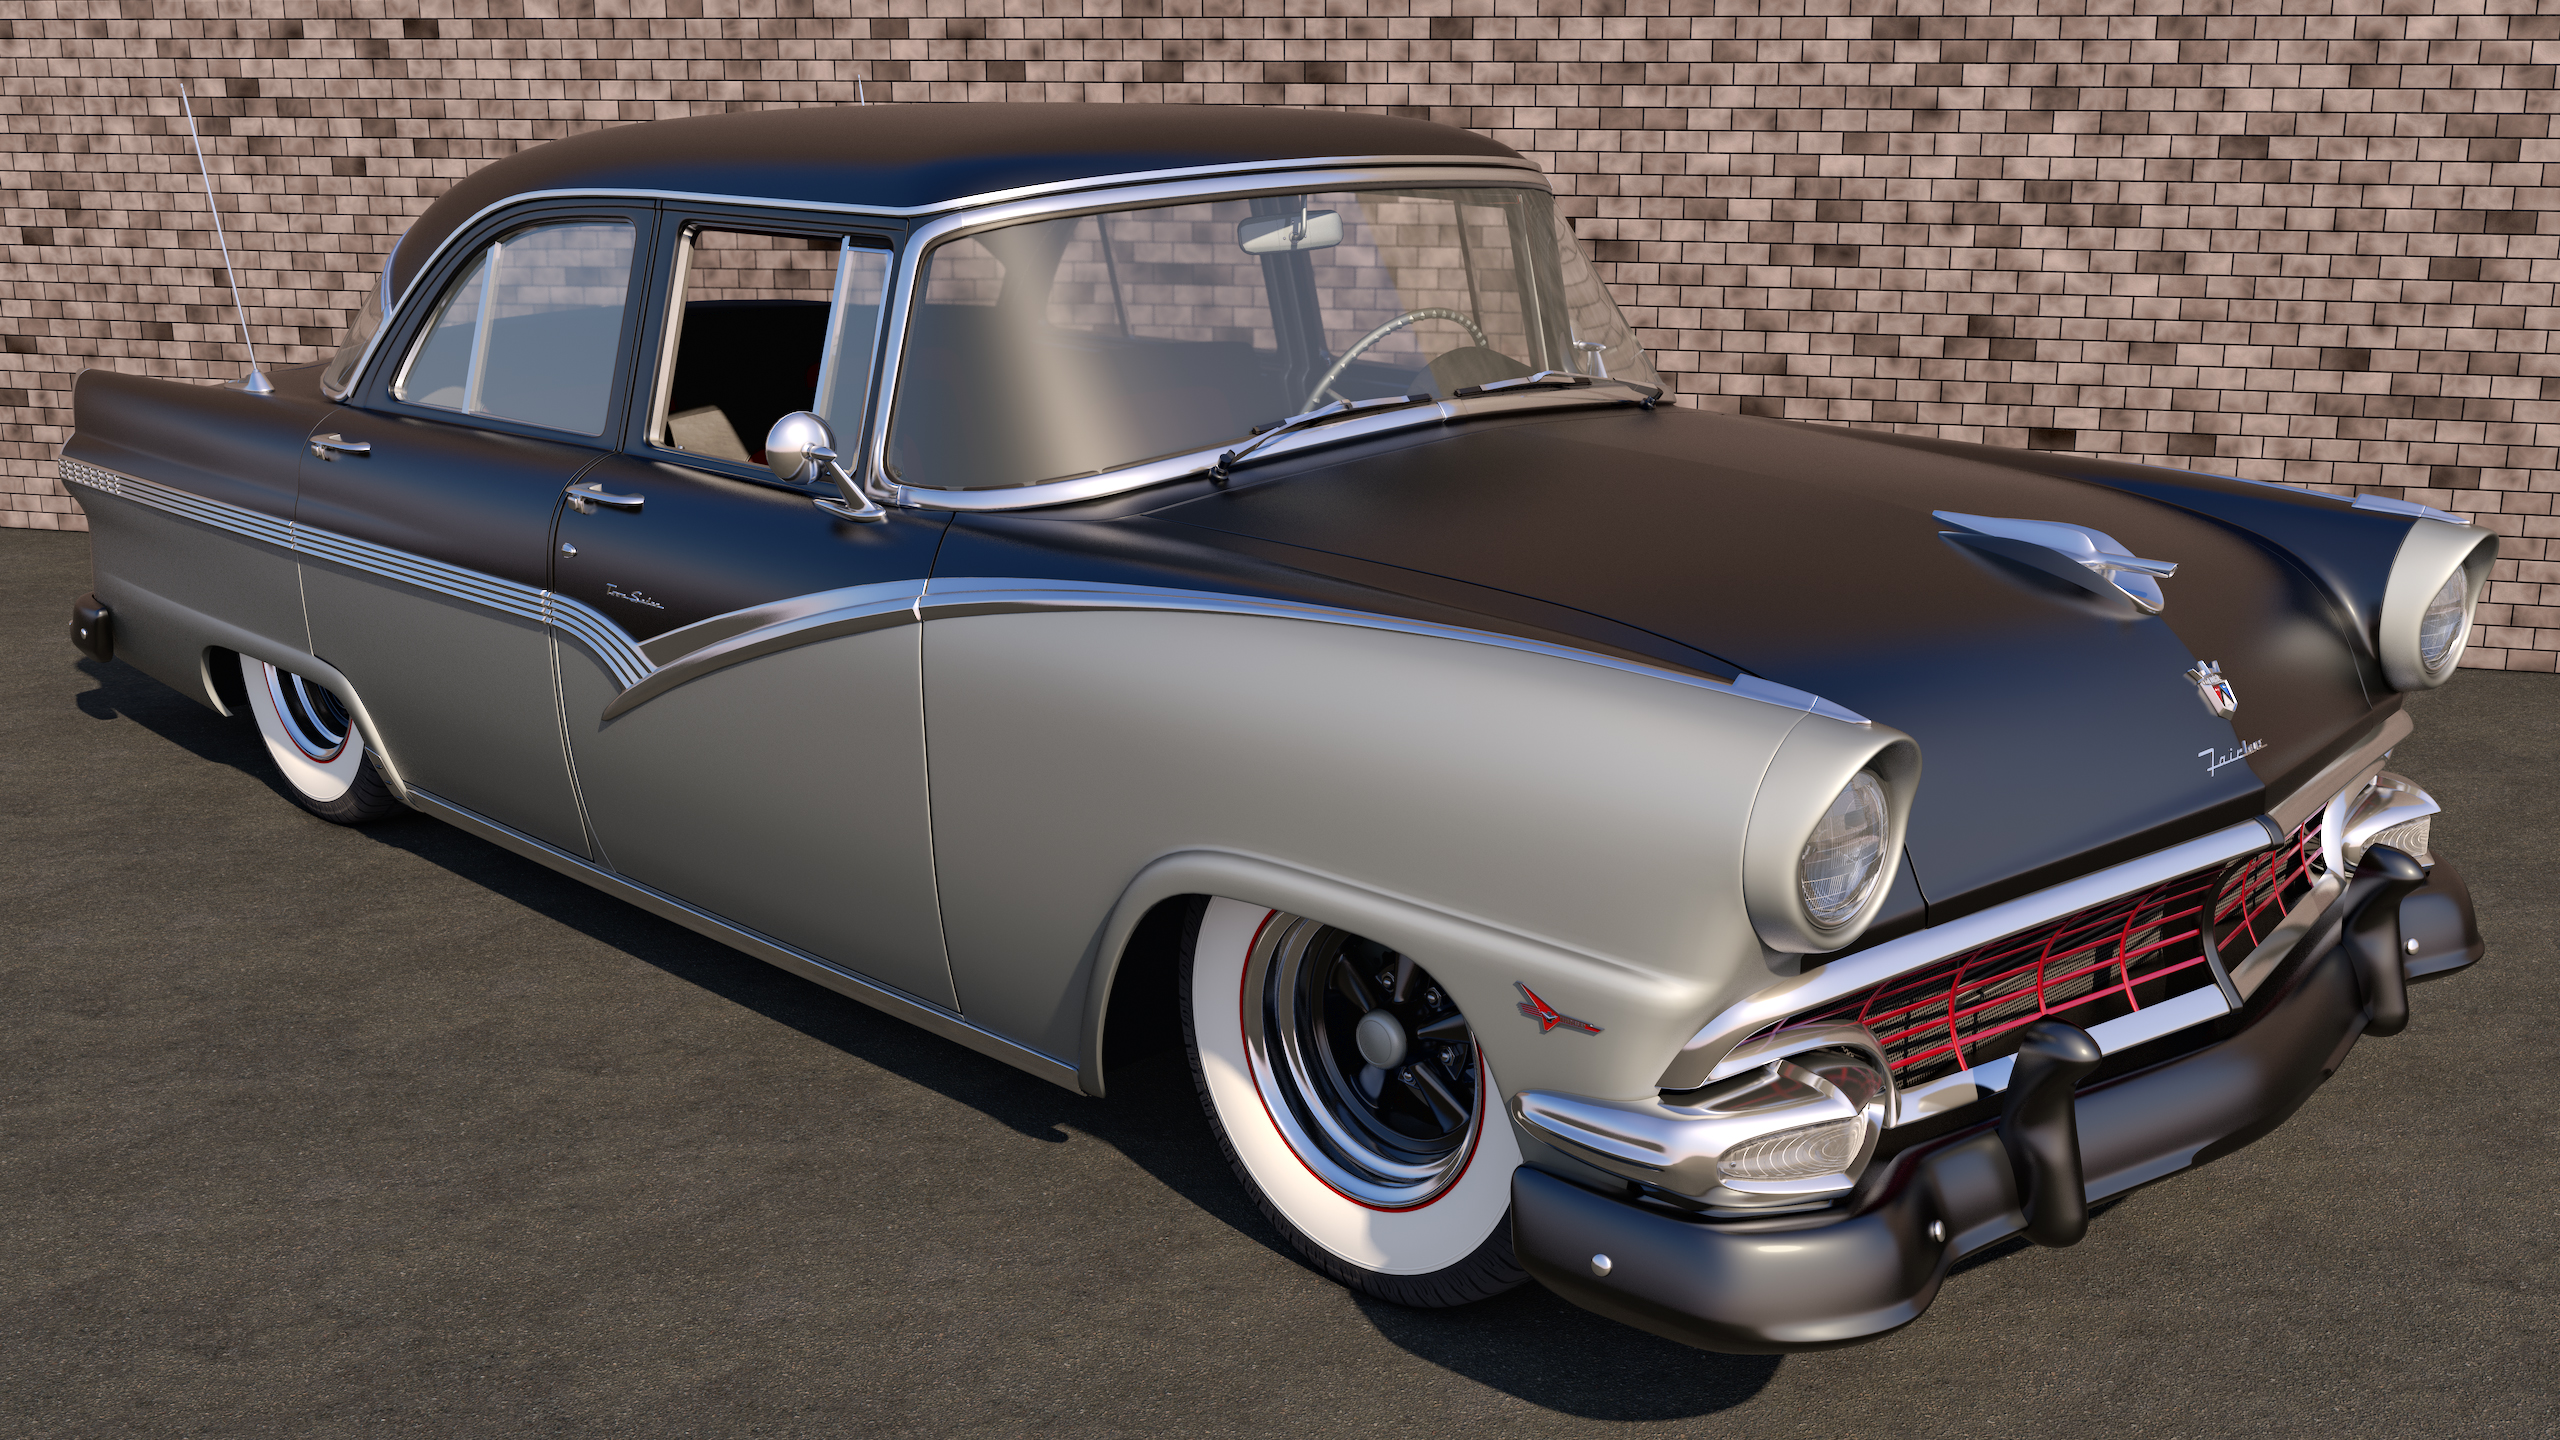 1956 ford fairlane town sedan by samcurry on deviantart. Black Bedroom Furniture Sets. Home Design Ideas